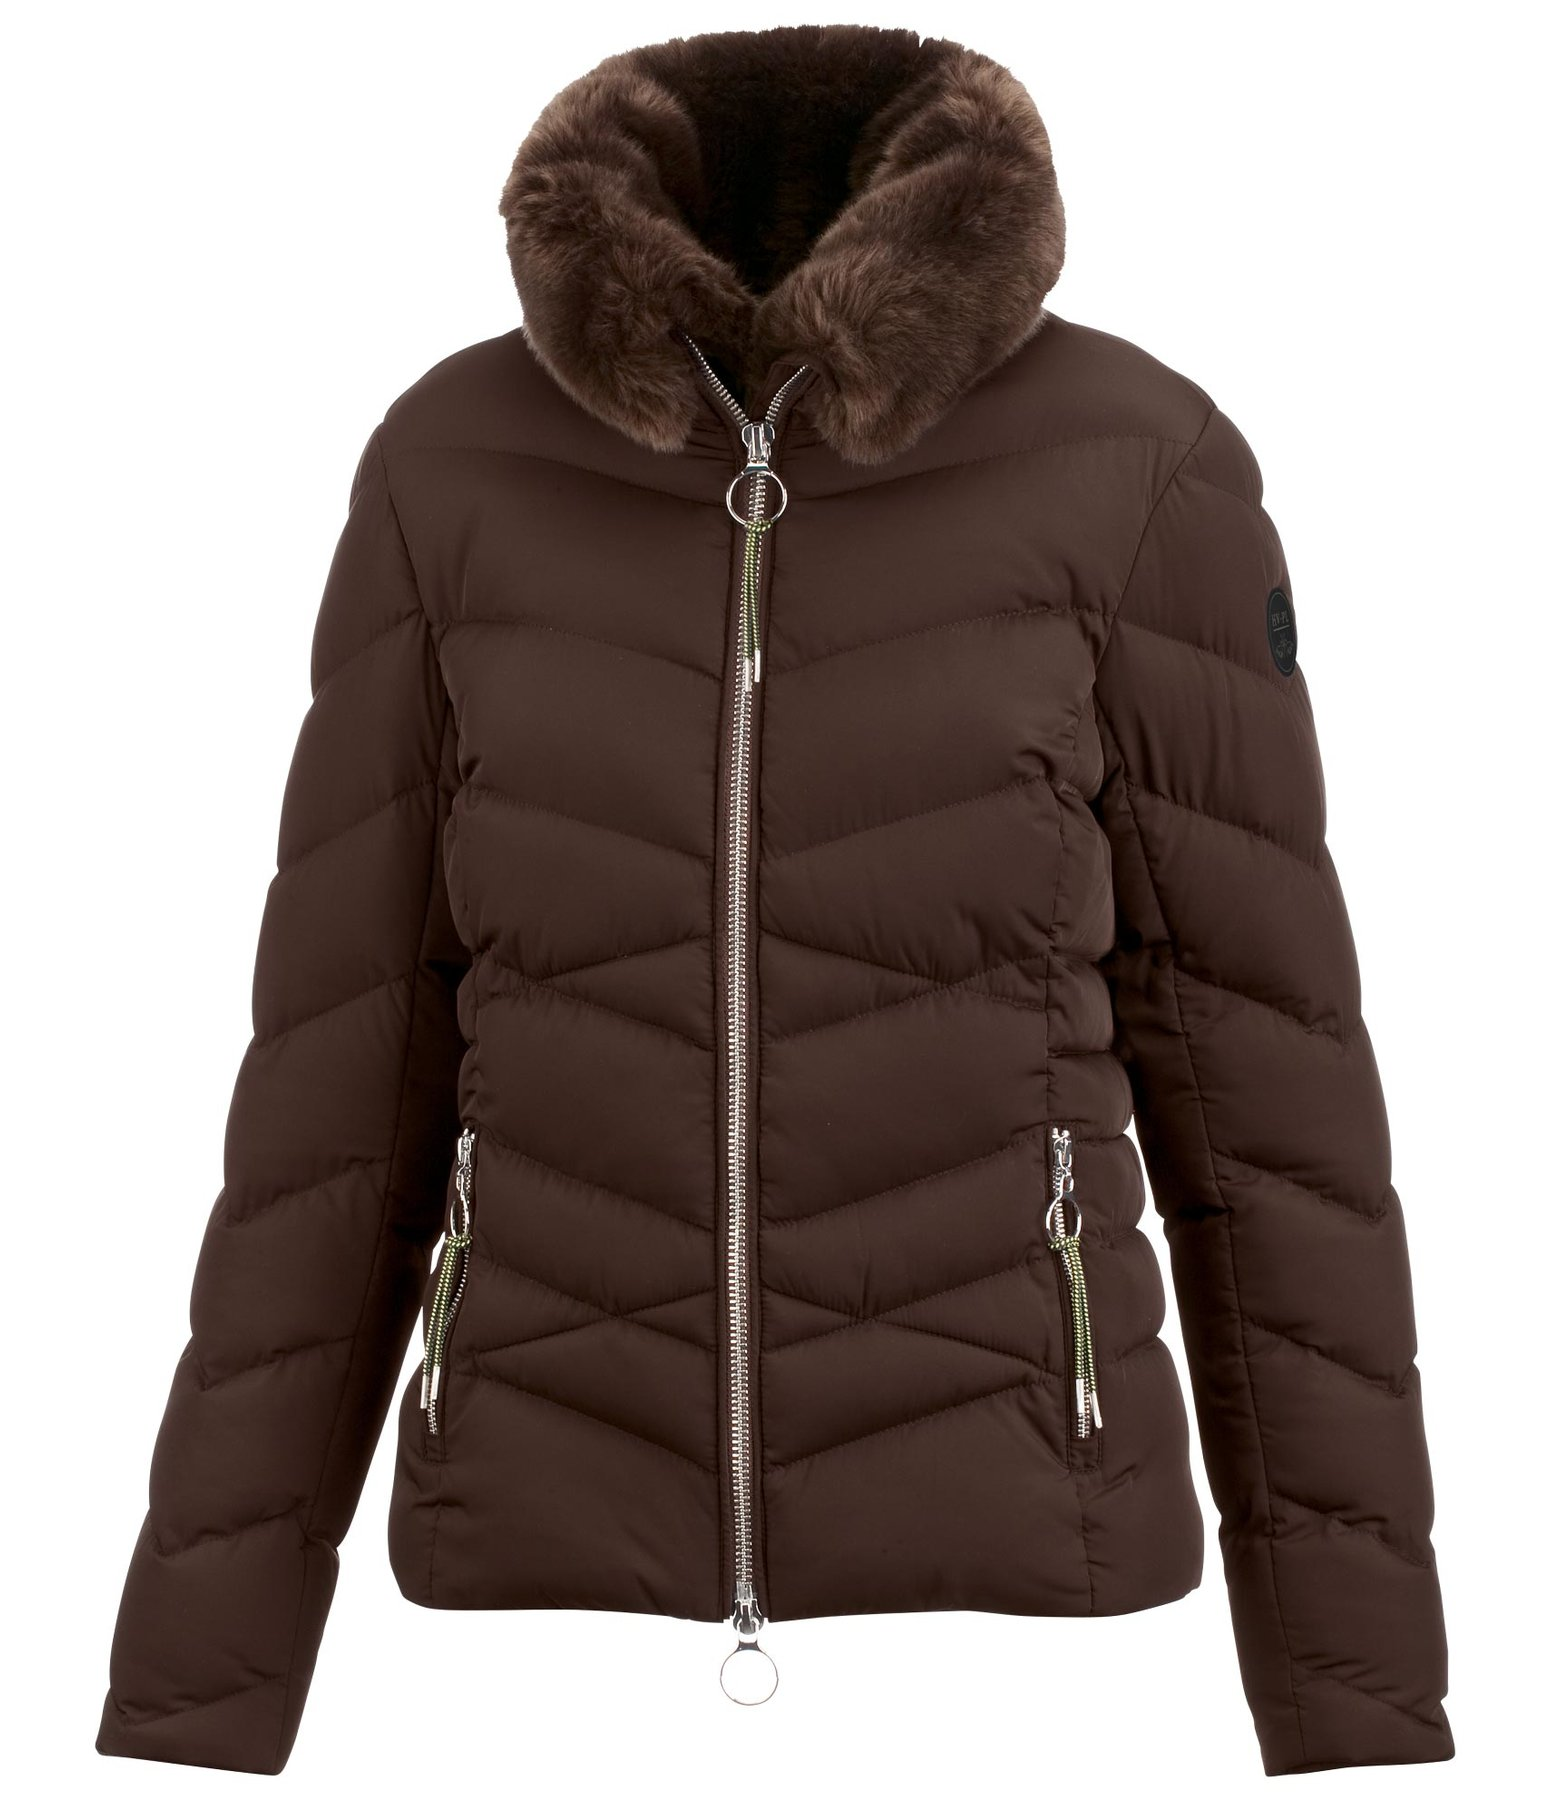 Down Look Riding Jacket Abbey Winter Riding Jackets